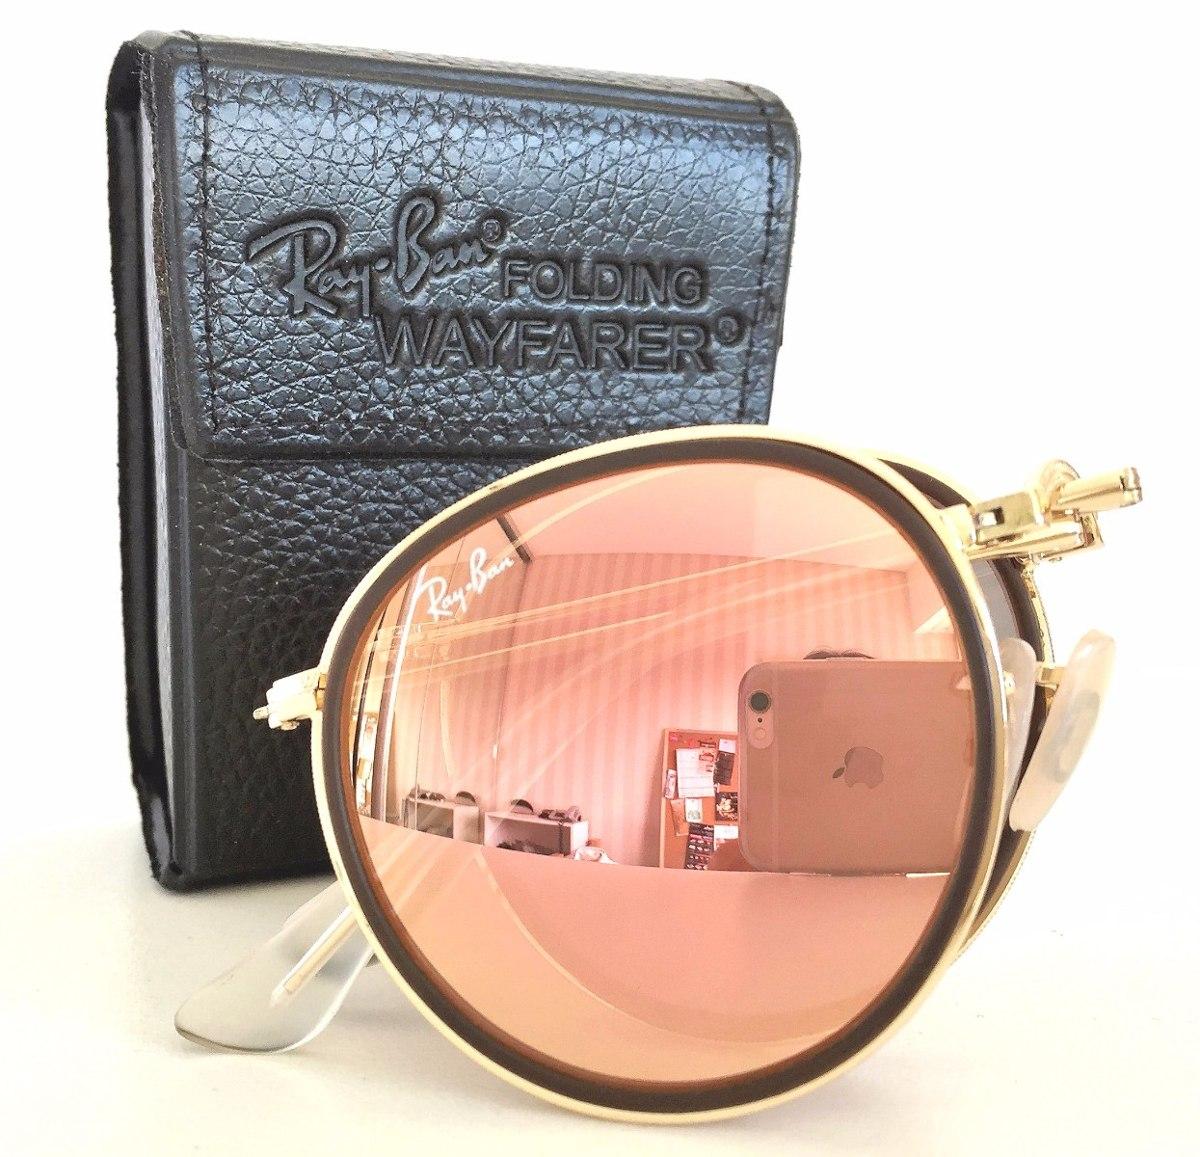 Ray Ban Rb 3517 Round Metal Folding Rb 3447 Lennon Sol Gafas ...